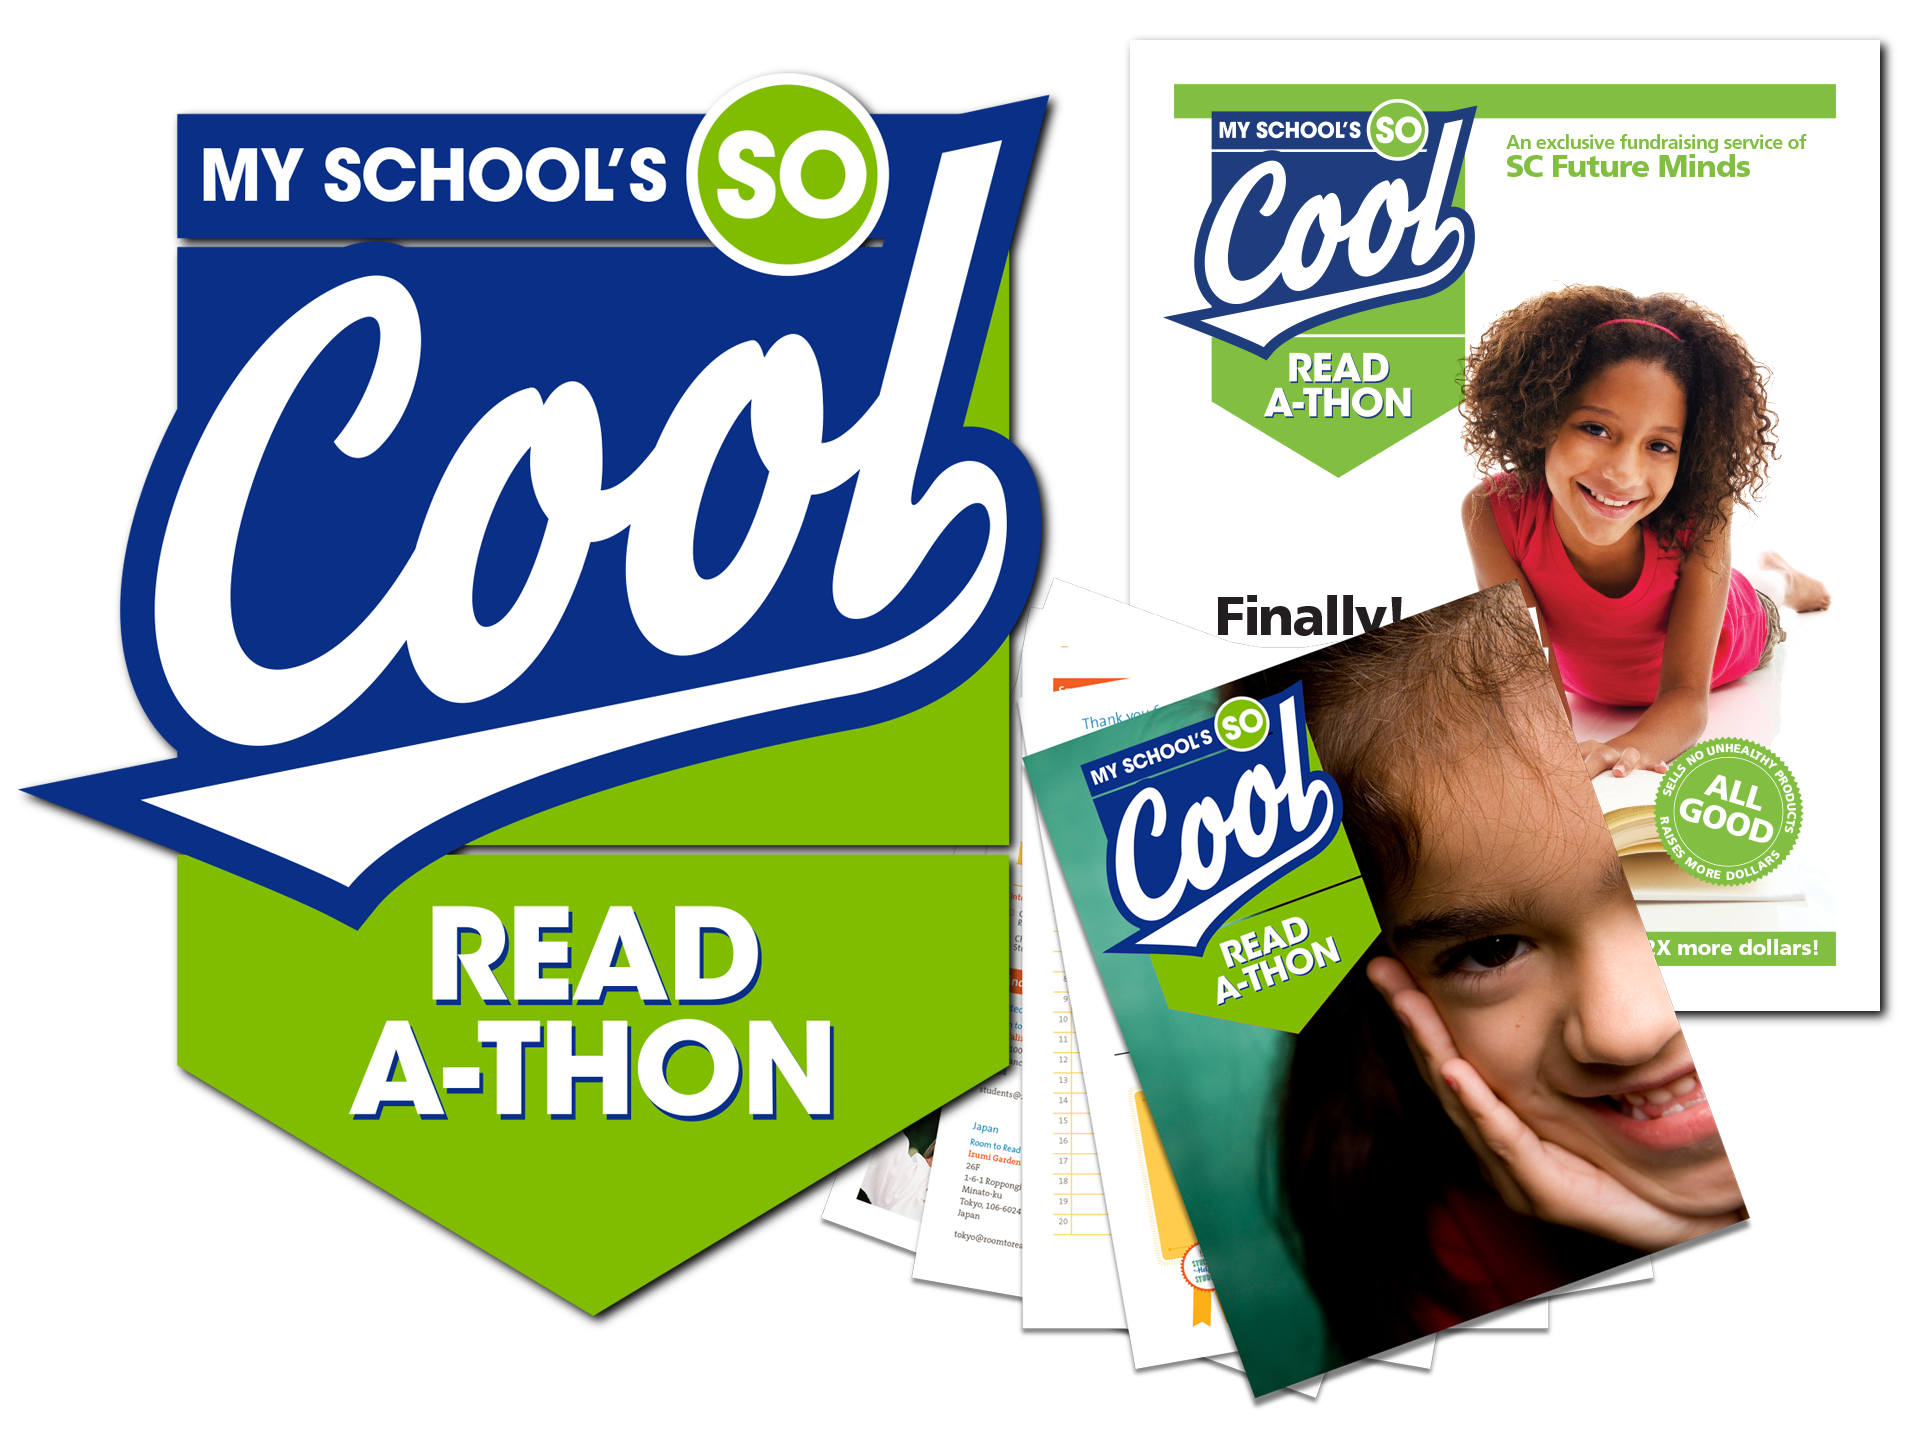 Branding and layout for reading initiative